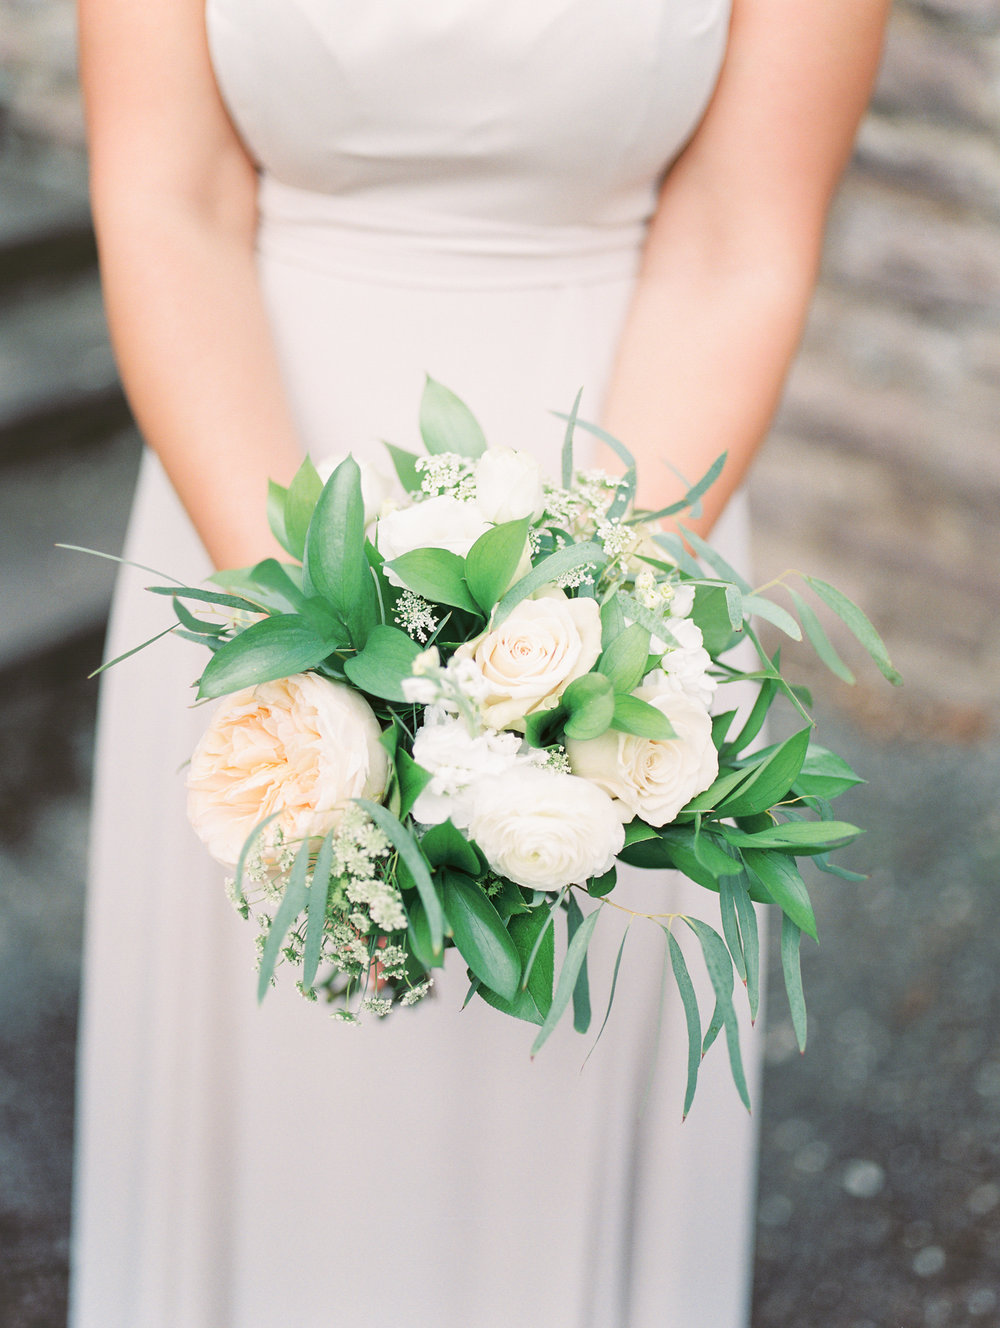 We love all the greenery and muted tones in this bridesmaid bouquet by Maura Rose Events from this bright boho chic Tyler Gardens wedding in Bucks County